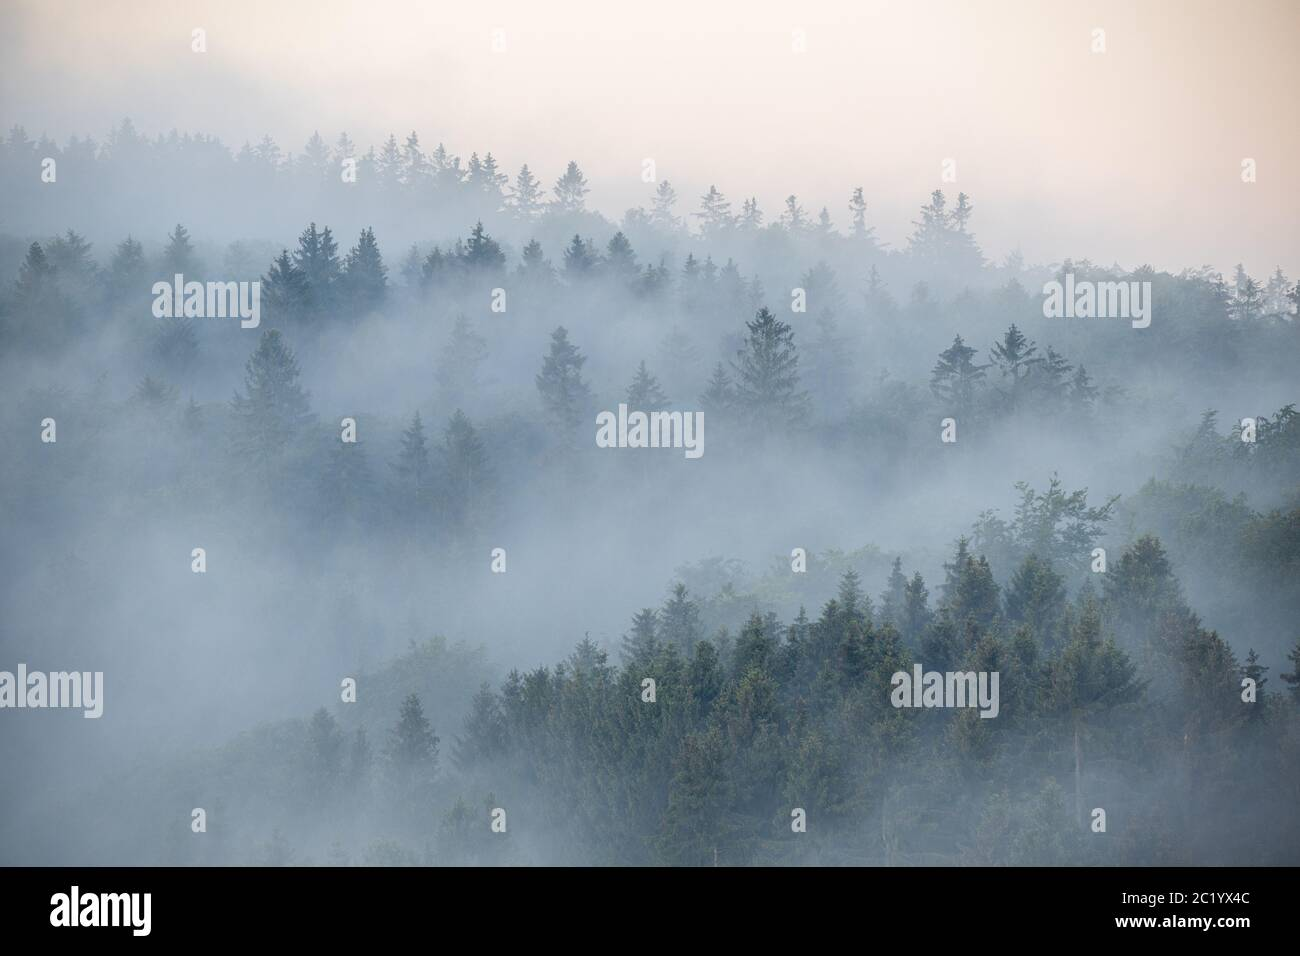 June 12th, 2020, Schwithten (Hessen): Fog is early in the morning over the spruce trees in the forest near Schwithten Seelenberg. | usage worldwide Stock Photo